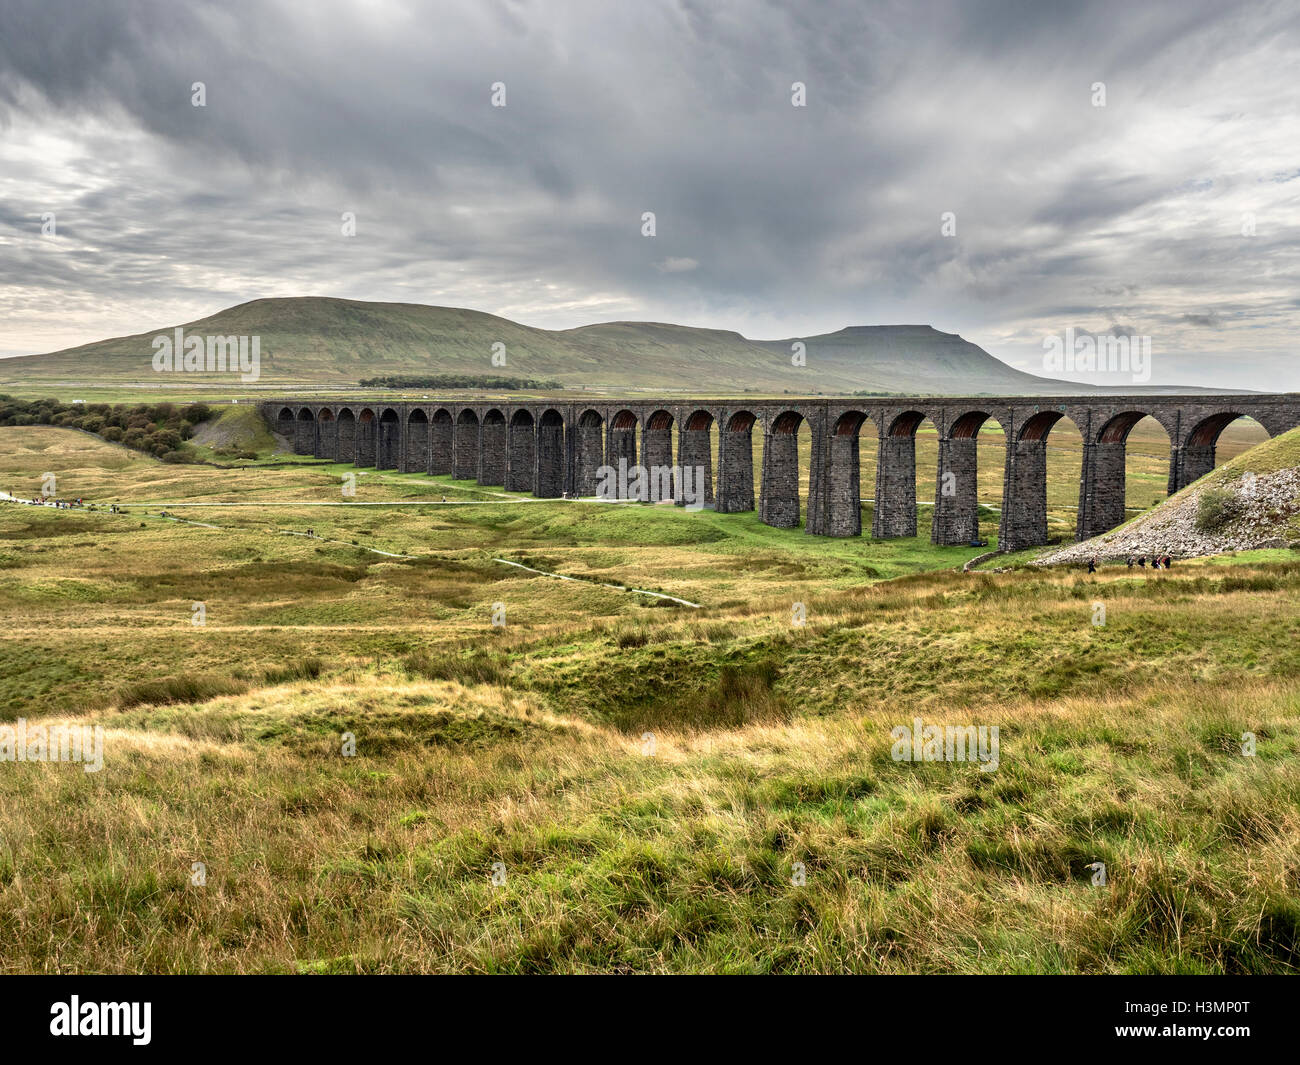 Ribblehead Viaduct and Ingleborough on an Overcast Day Ribblehead Yorkshire Dales England - Stock Image